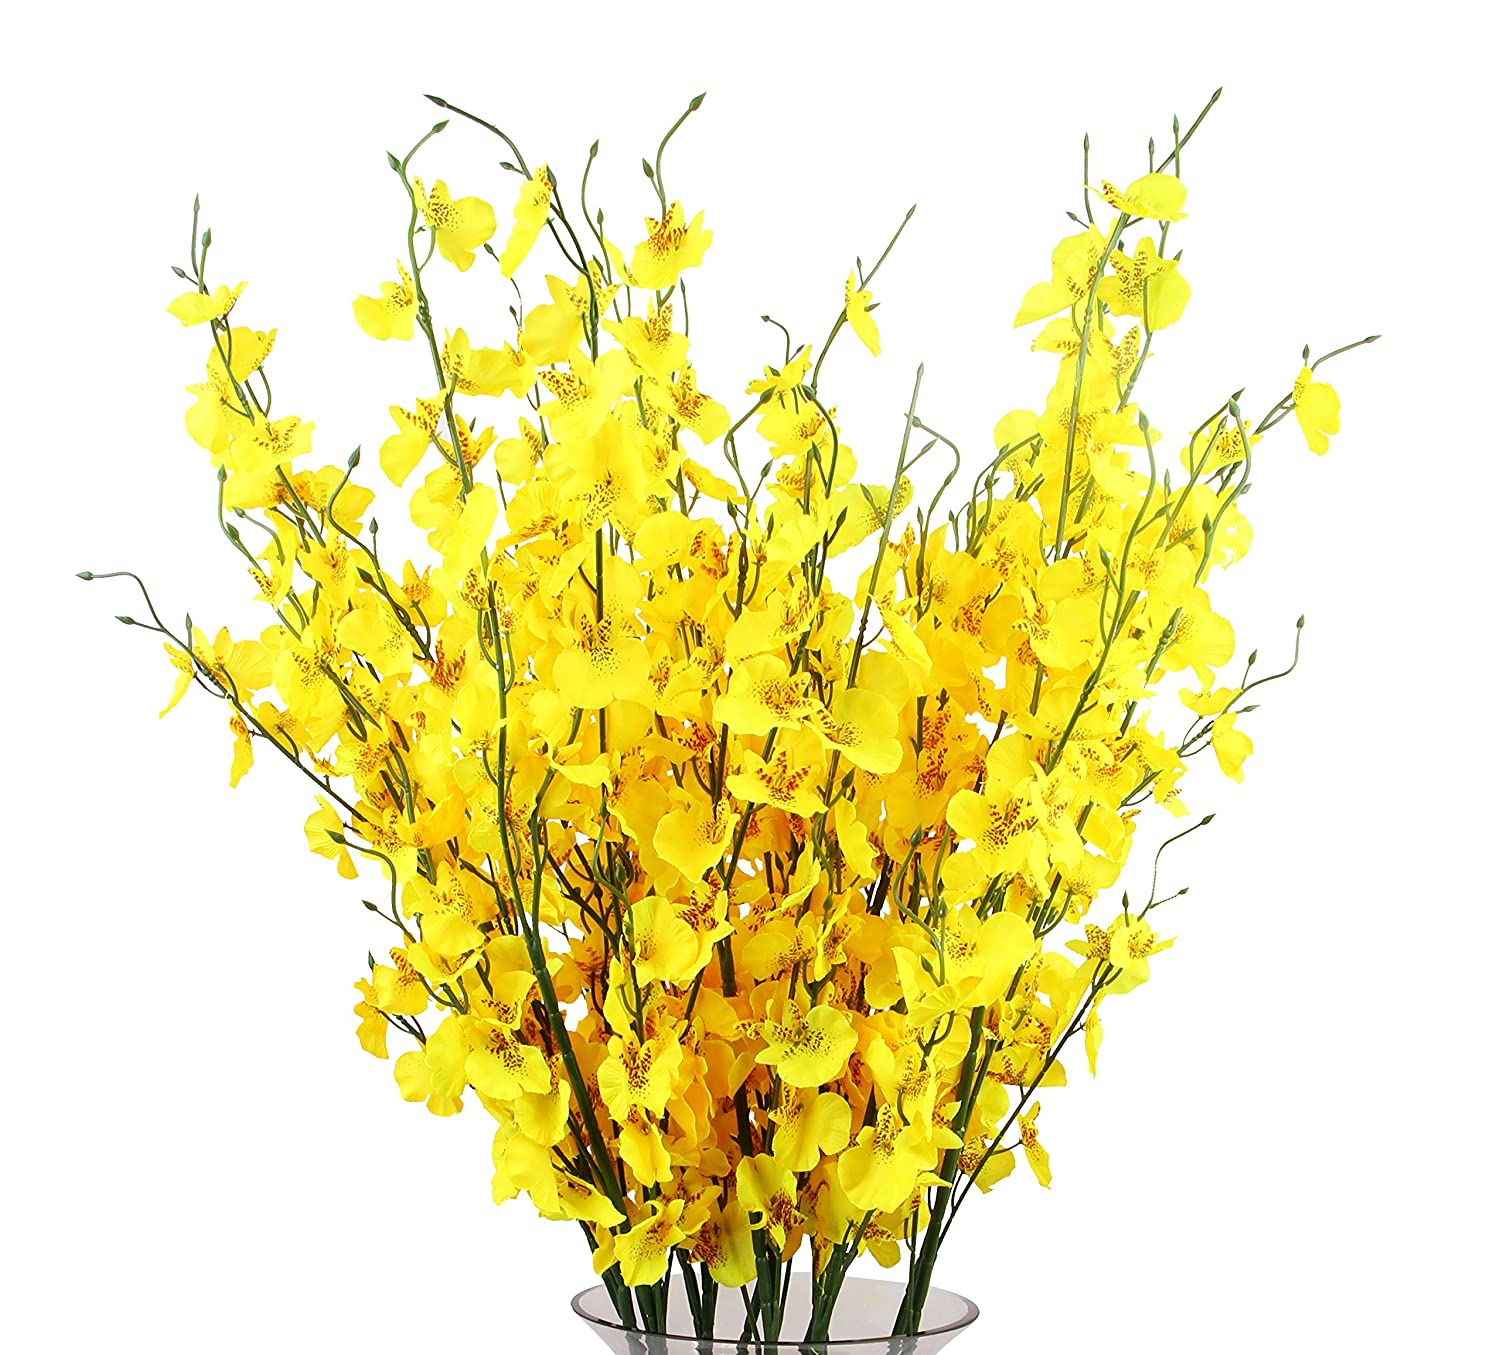 TYEERDEC Artificial Orchids Flowers, 10 Pcs Silk Fake Orchids Flowers in Bulk Orquideas Flowers Artificial for Indoor Outdoor Wedding Home Office Decoration Festive Furnishing Yellow